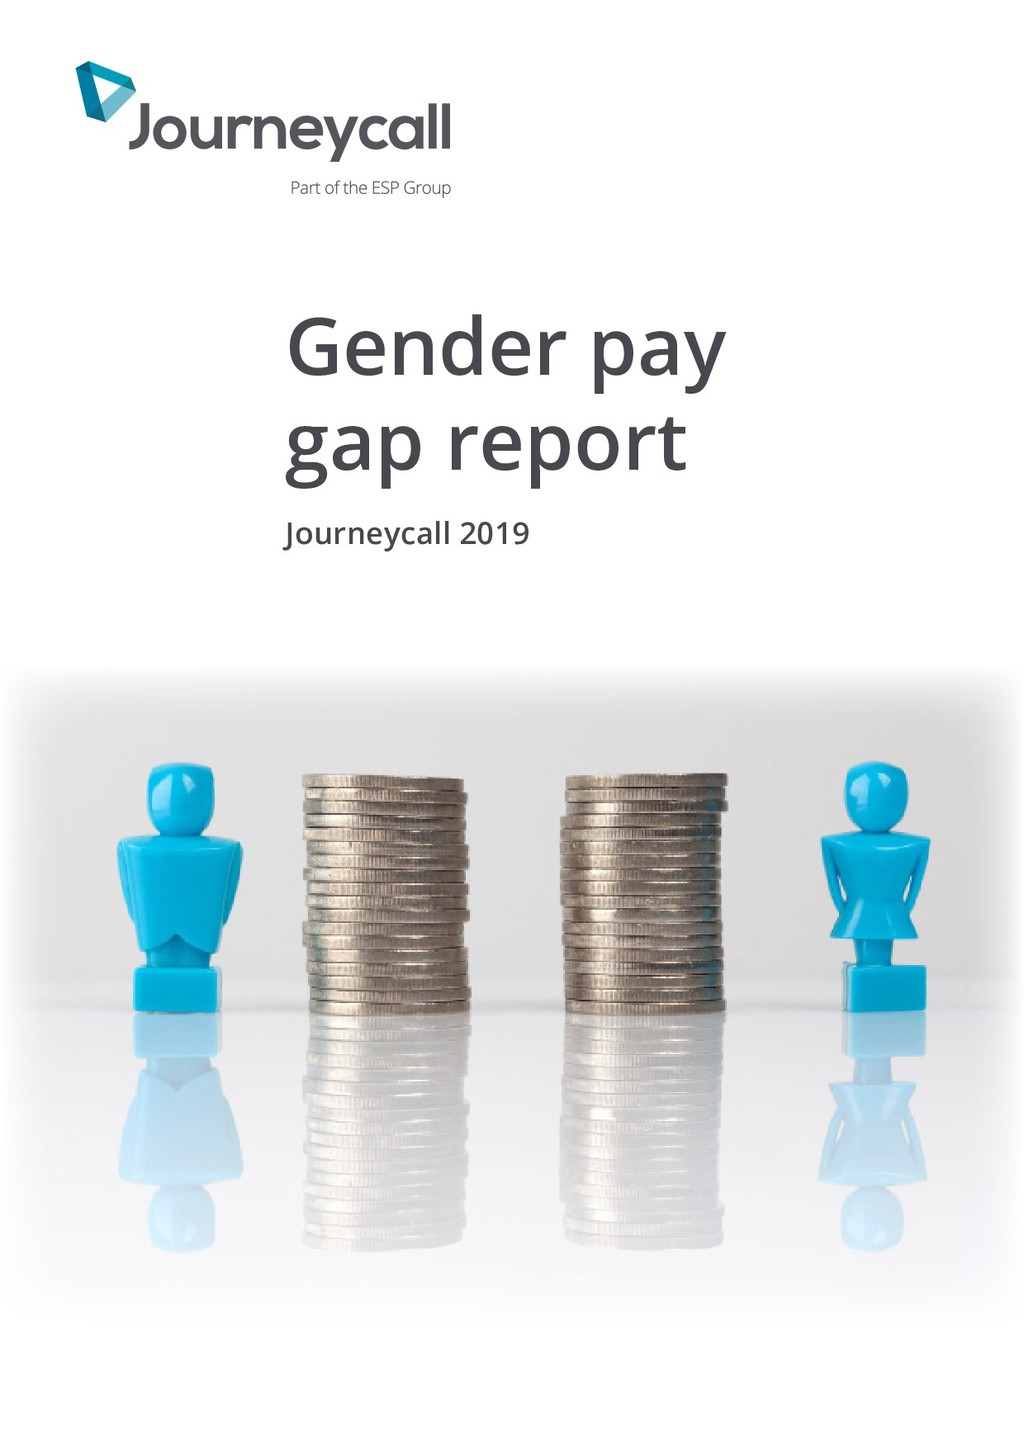 Gender pay gap report Journeycall 2019